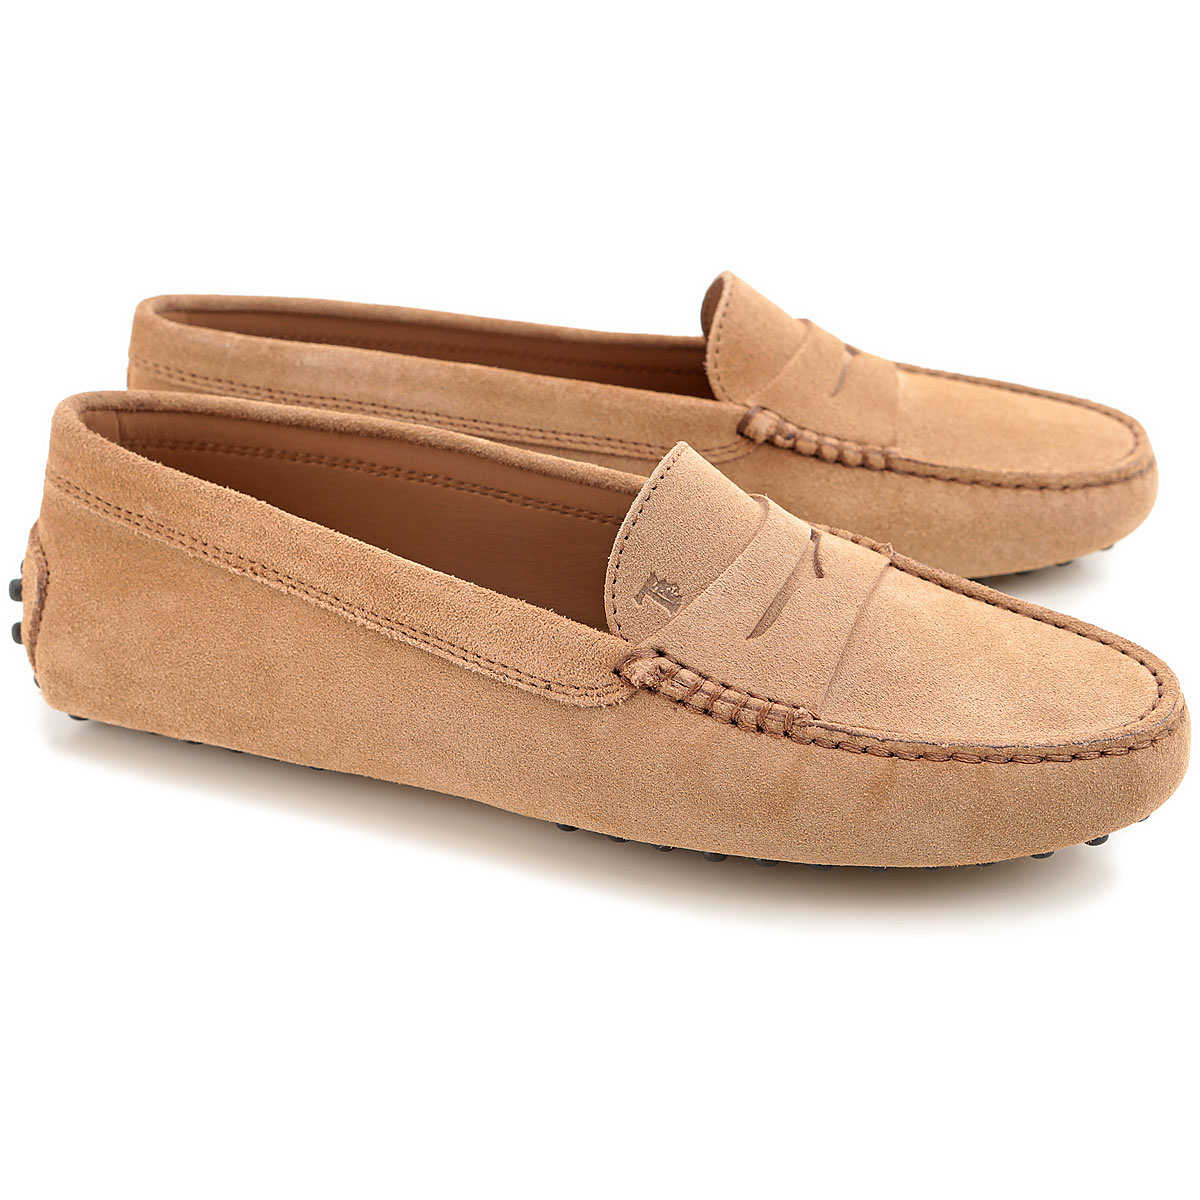 Tods Loafers for Women Sand DK - GOOFASH - Womens FLAT SHOES